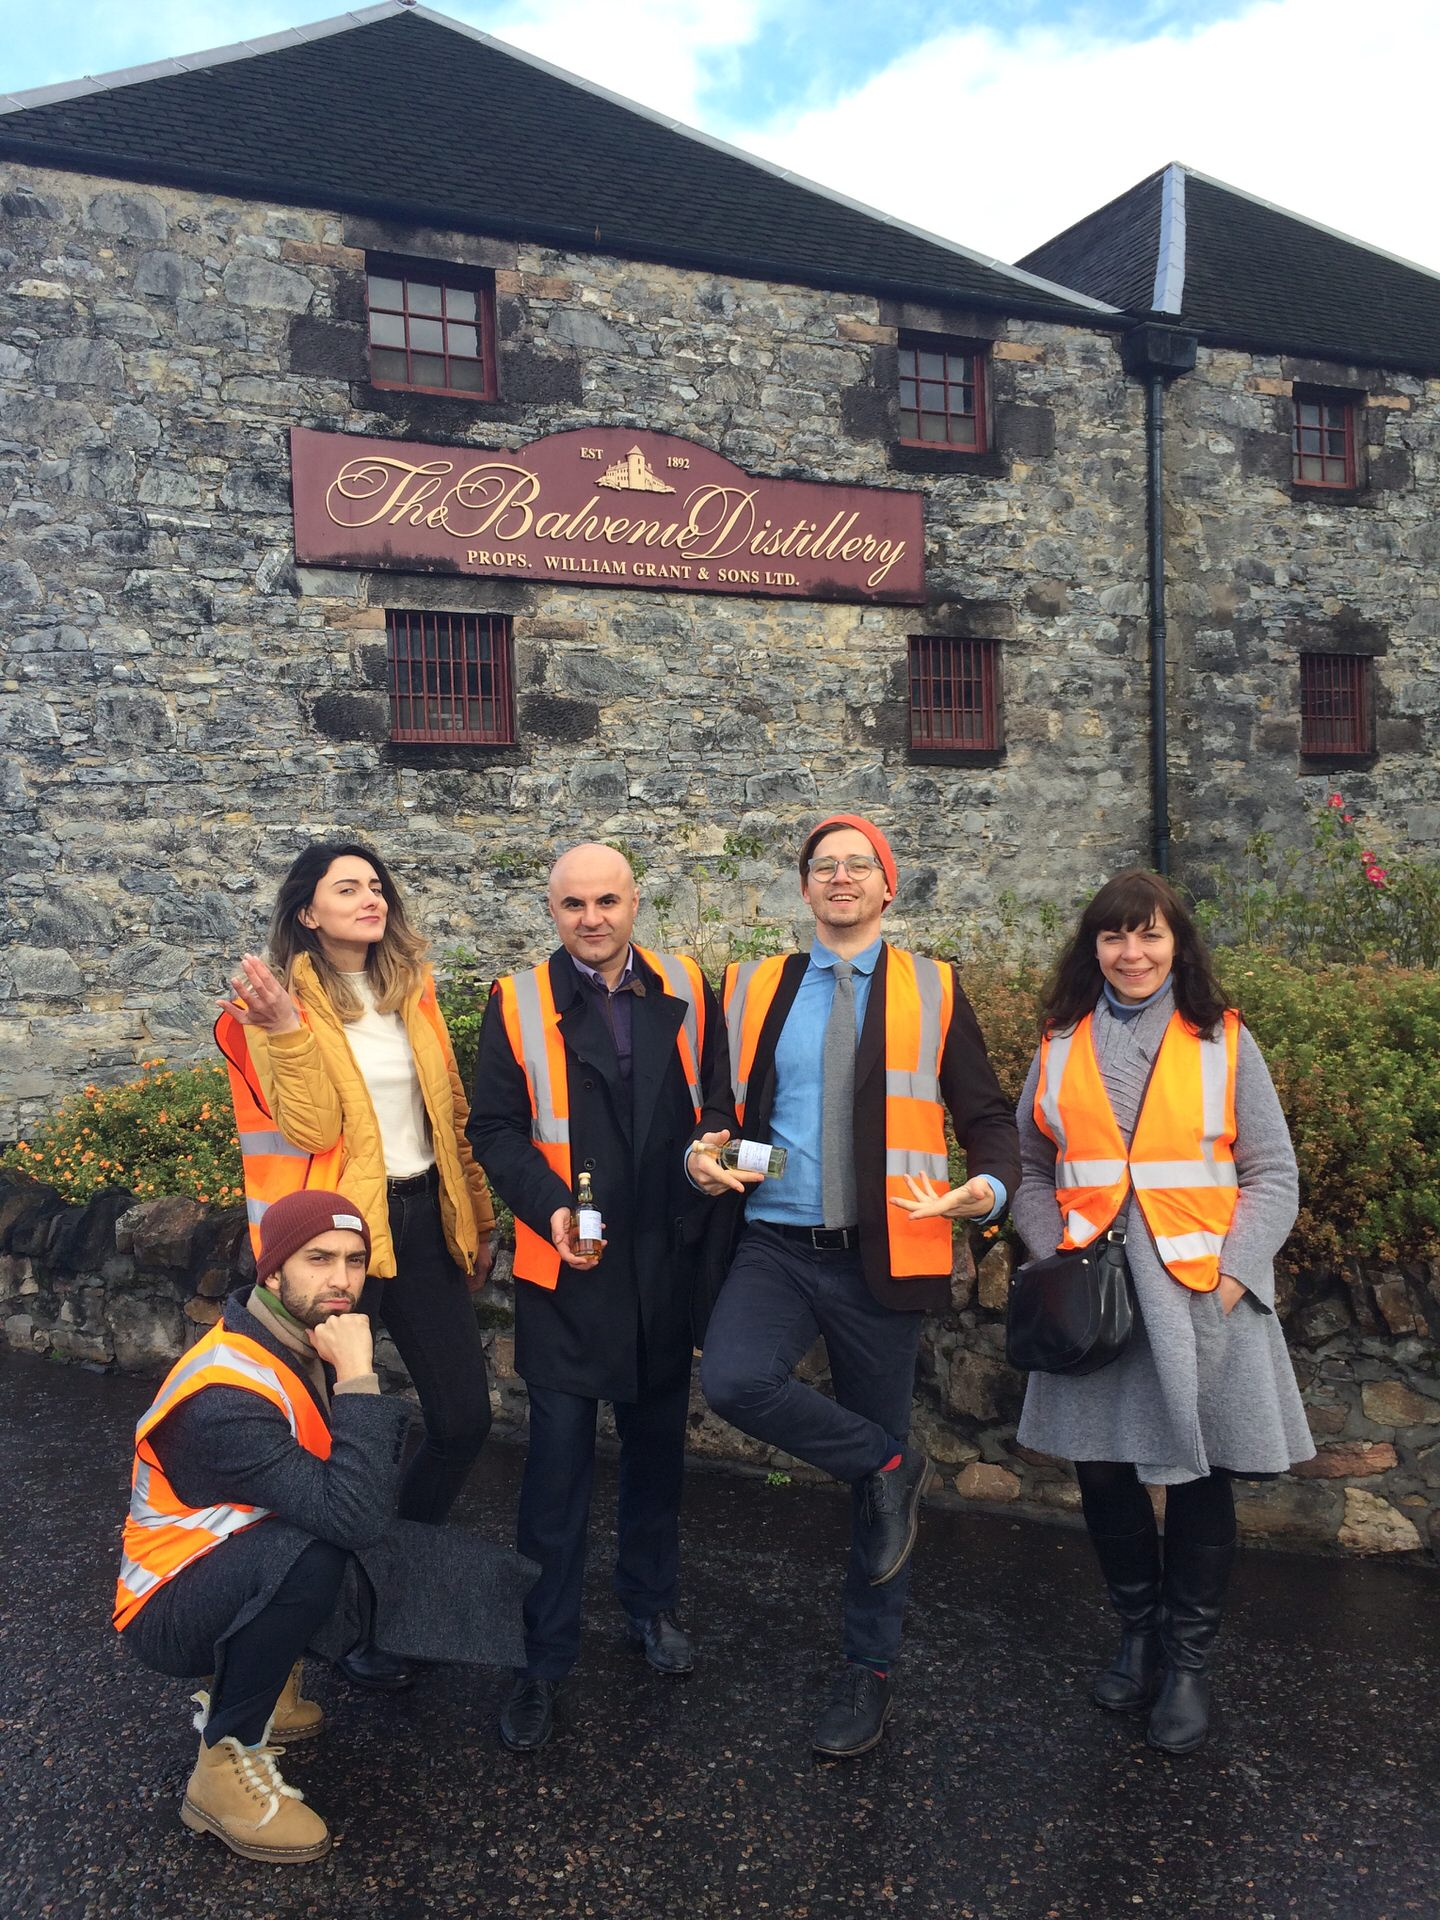 a press tour to William Grant & Sons whisky distillery in Scotland